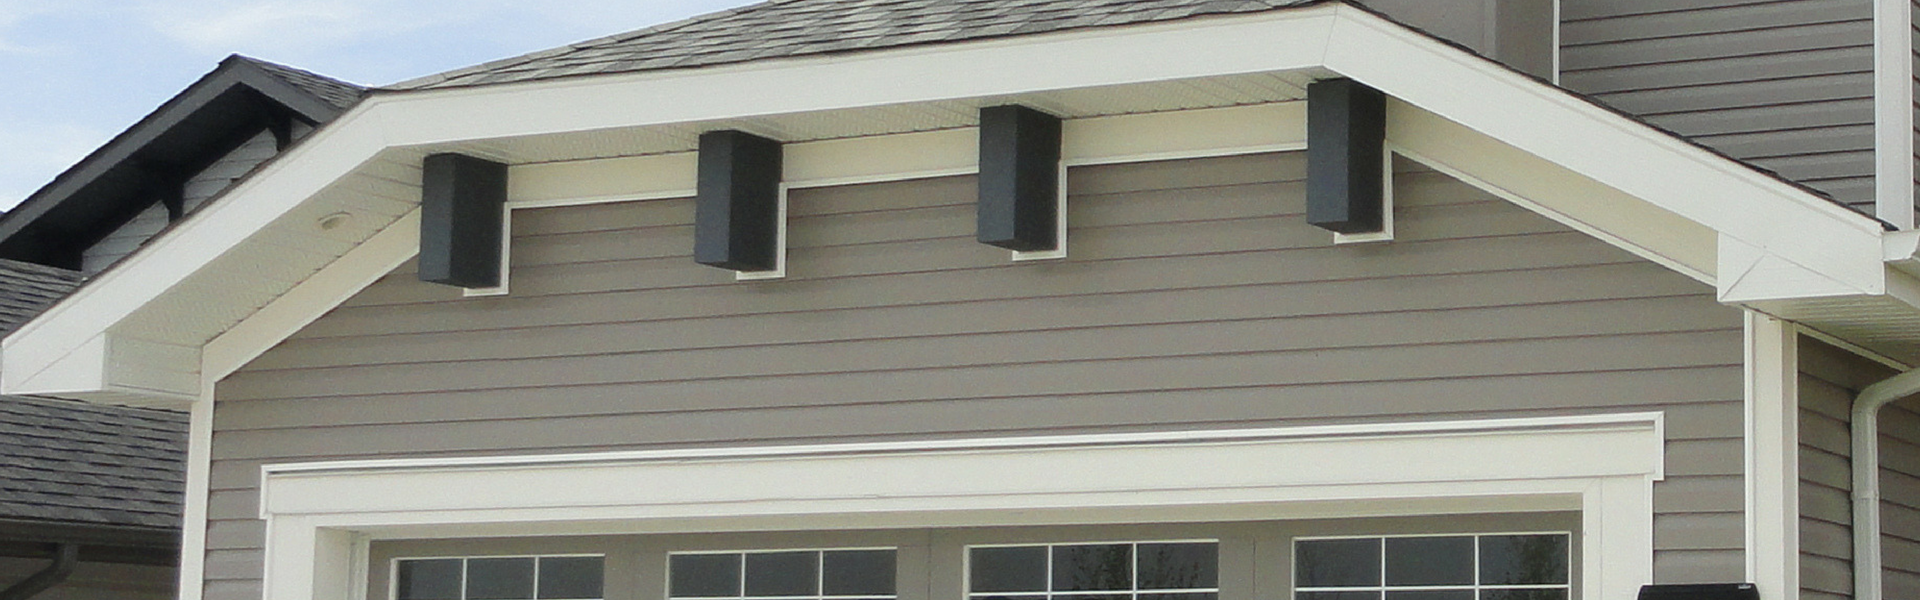 Siding page banner-1